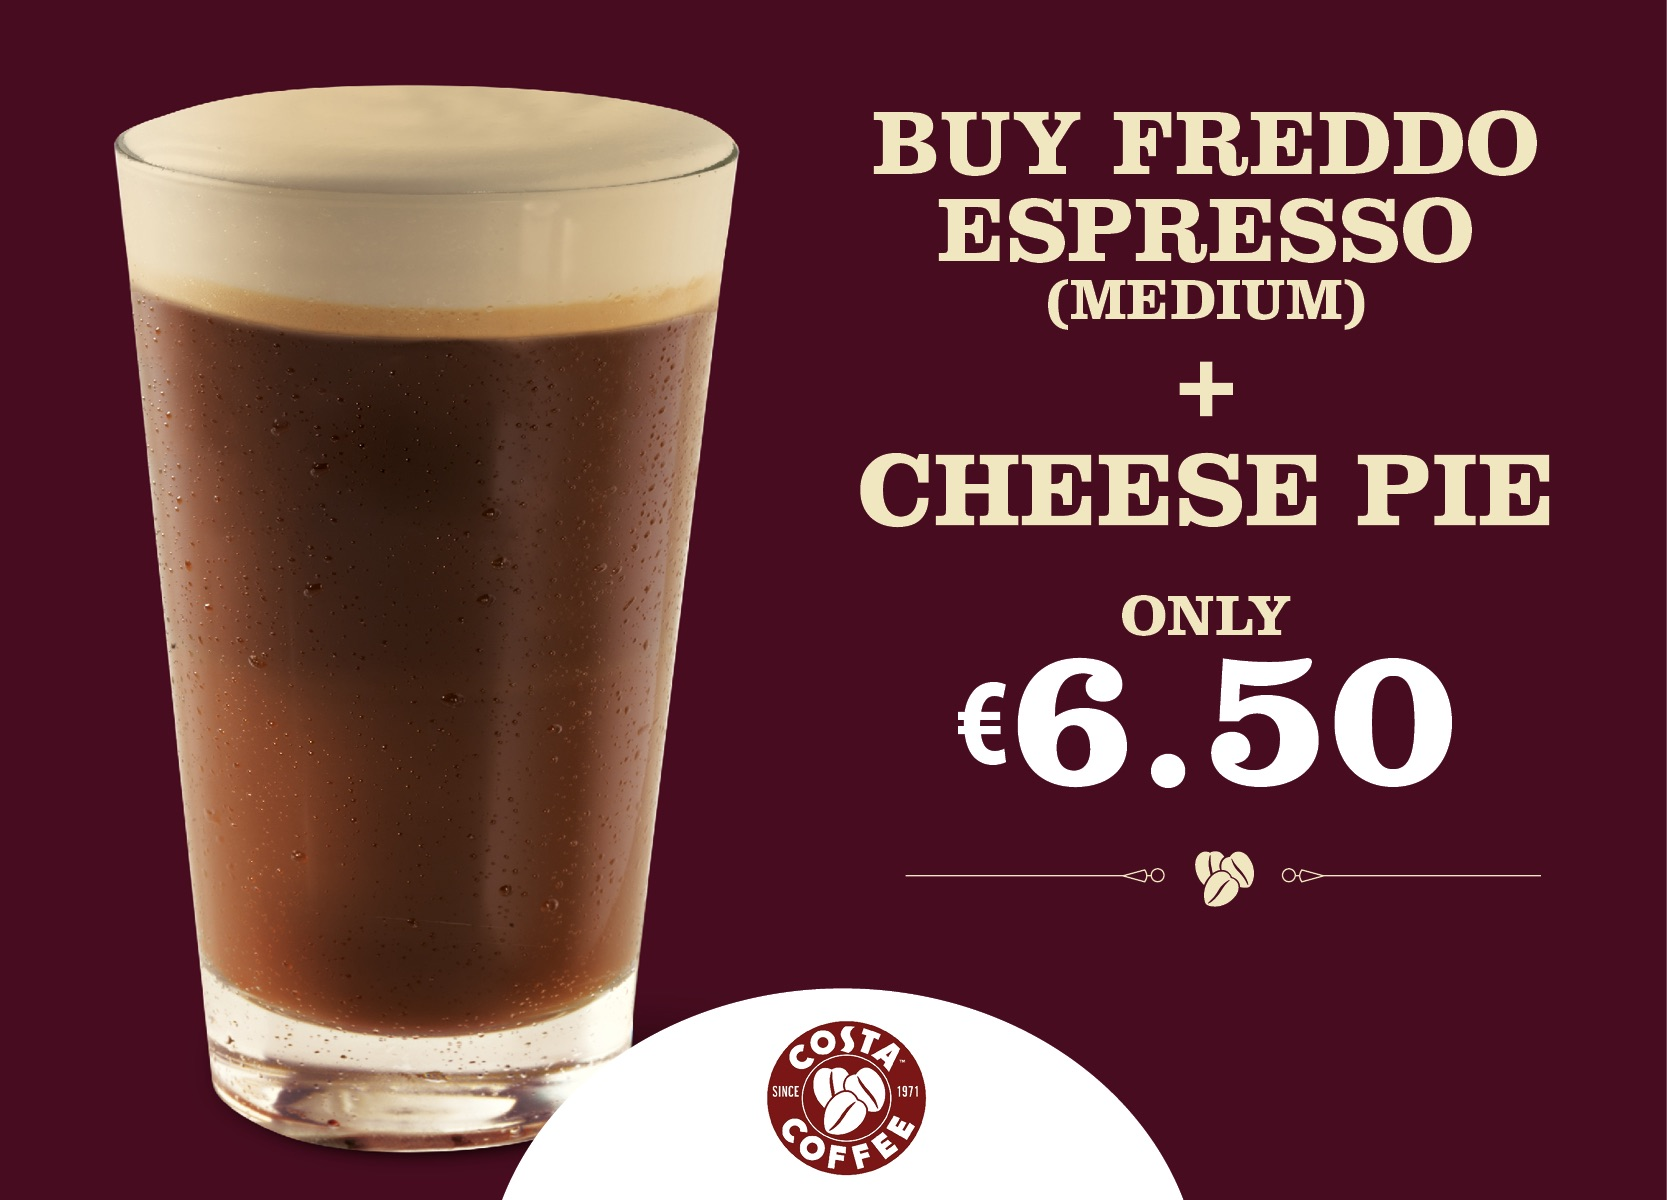 Special offer. Buy a freddo espresso medium and a cheese pie for only €6.50